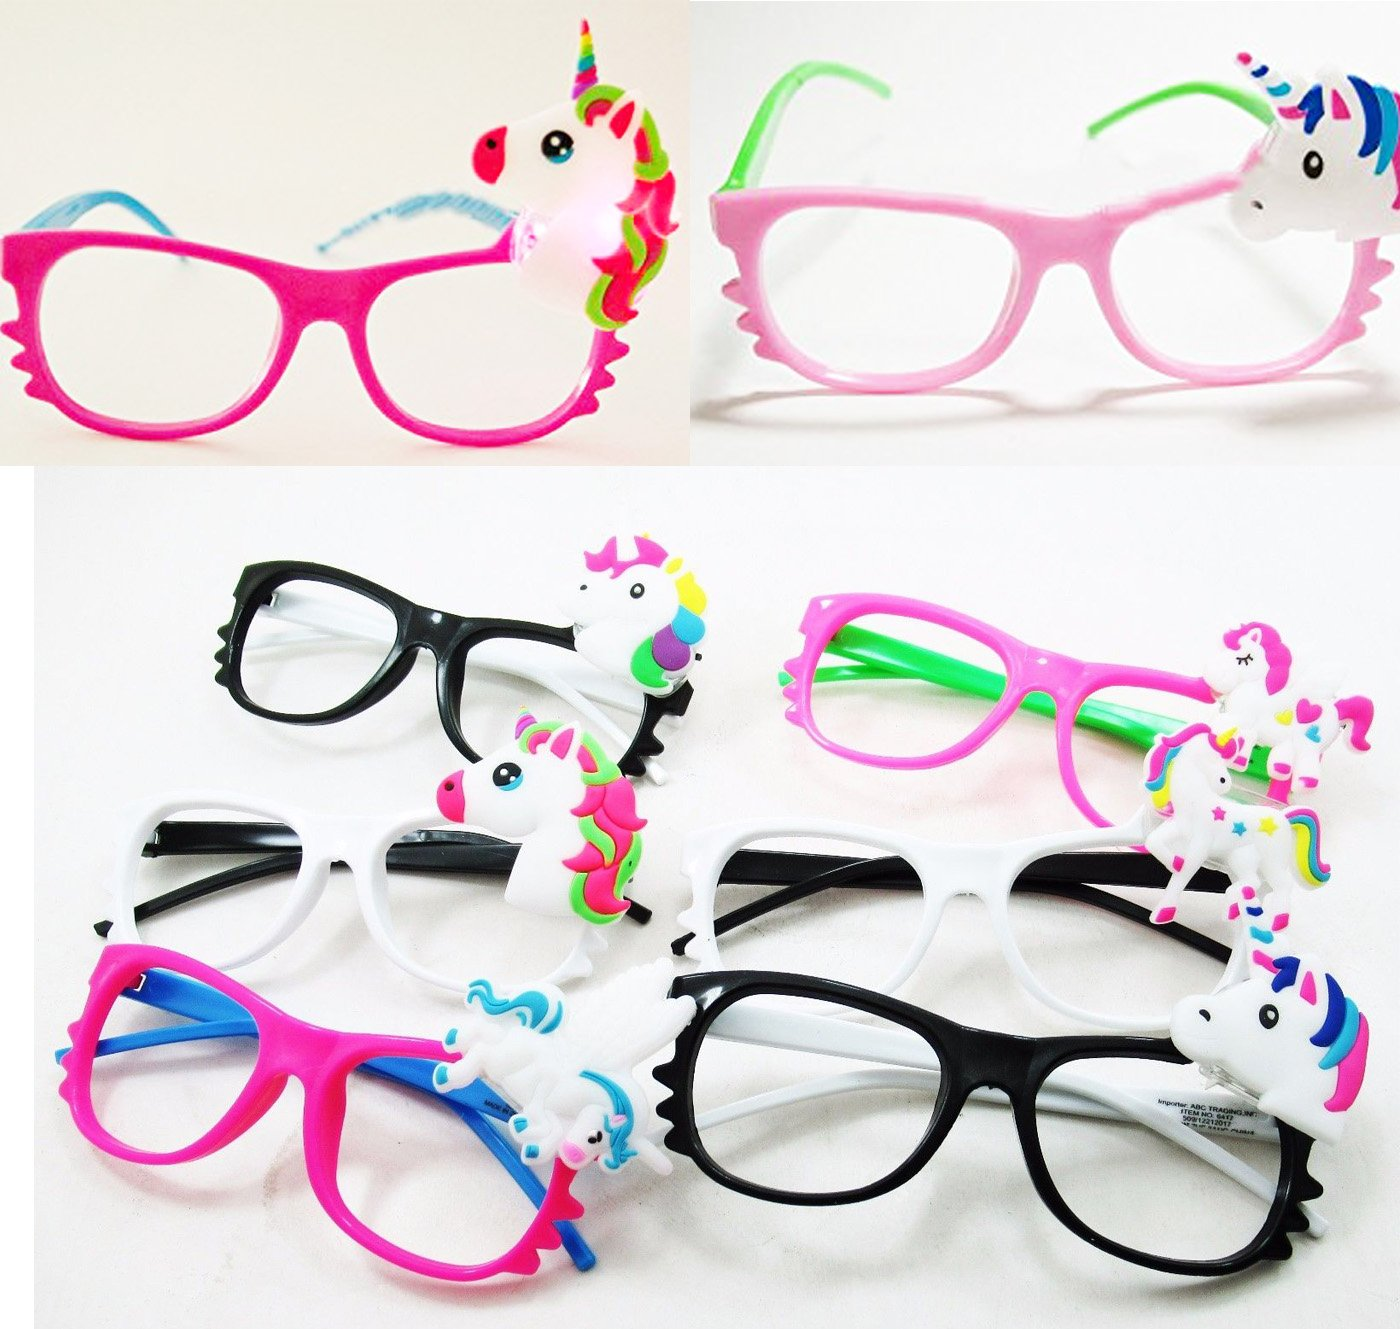 Toycamp 12/pk Flashing Lensless Assorted Unicorn Glasses LED SunGlasses Rave Party Wear by Toycamp (Image #1)